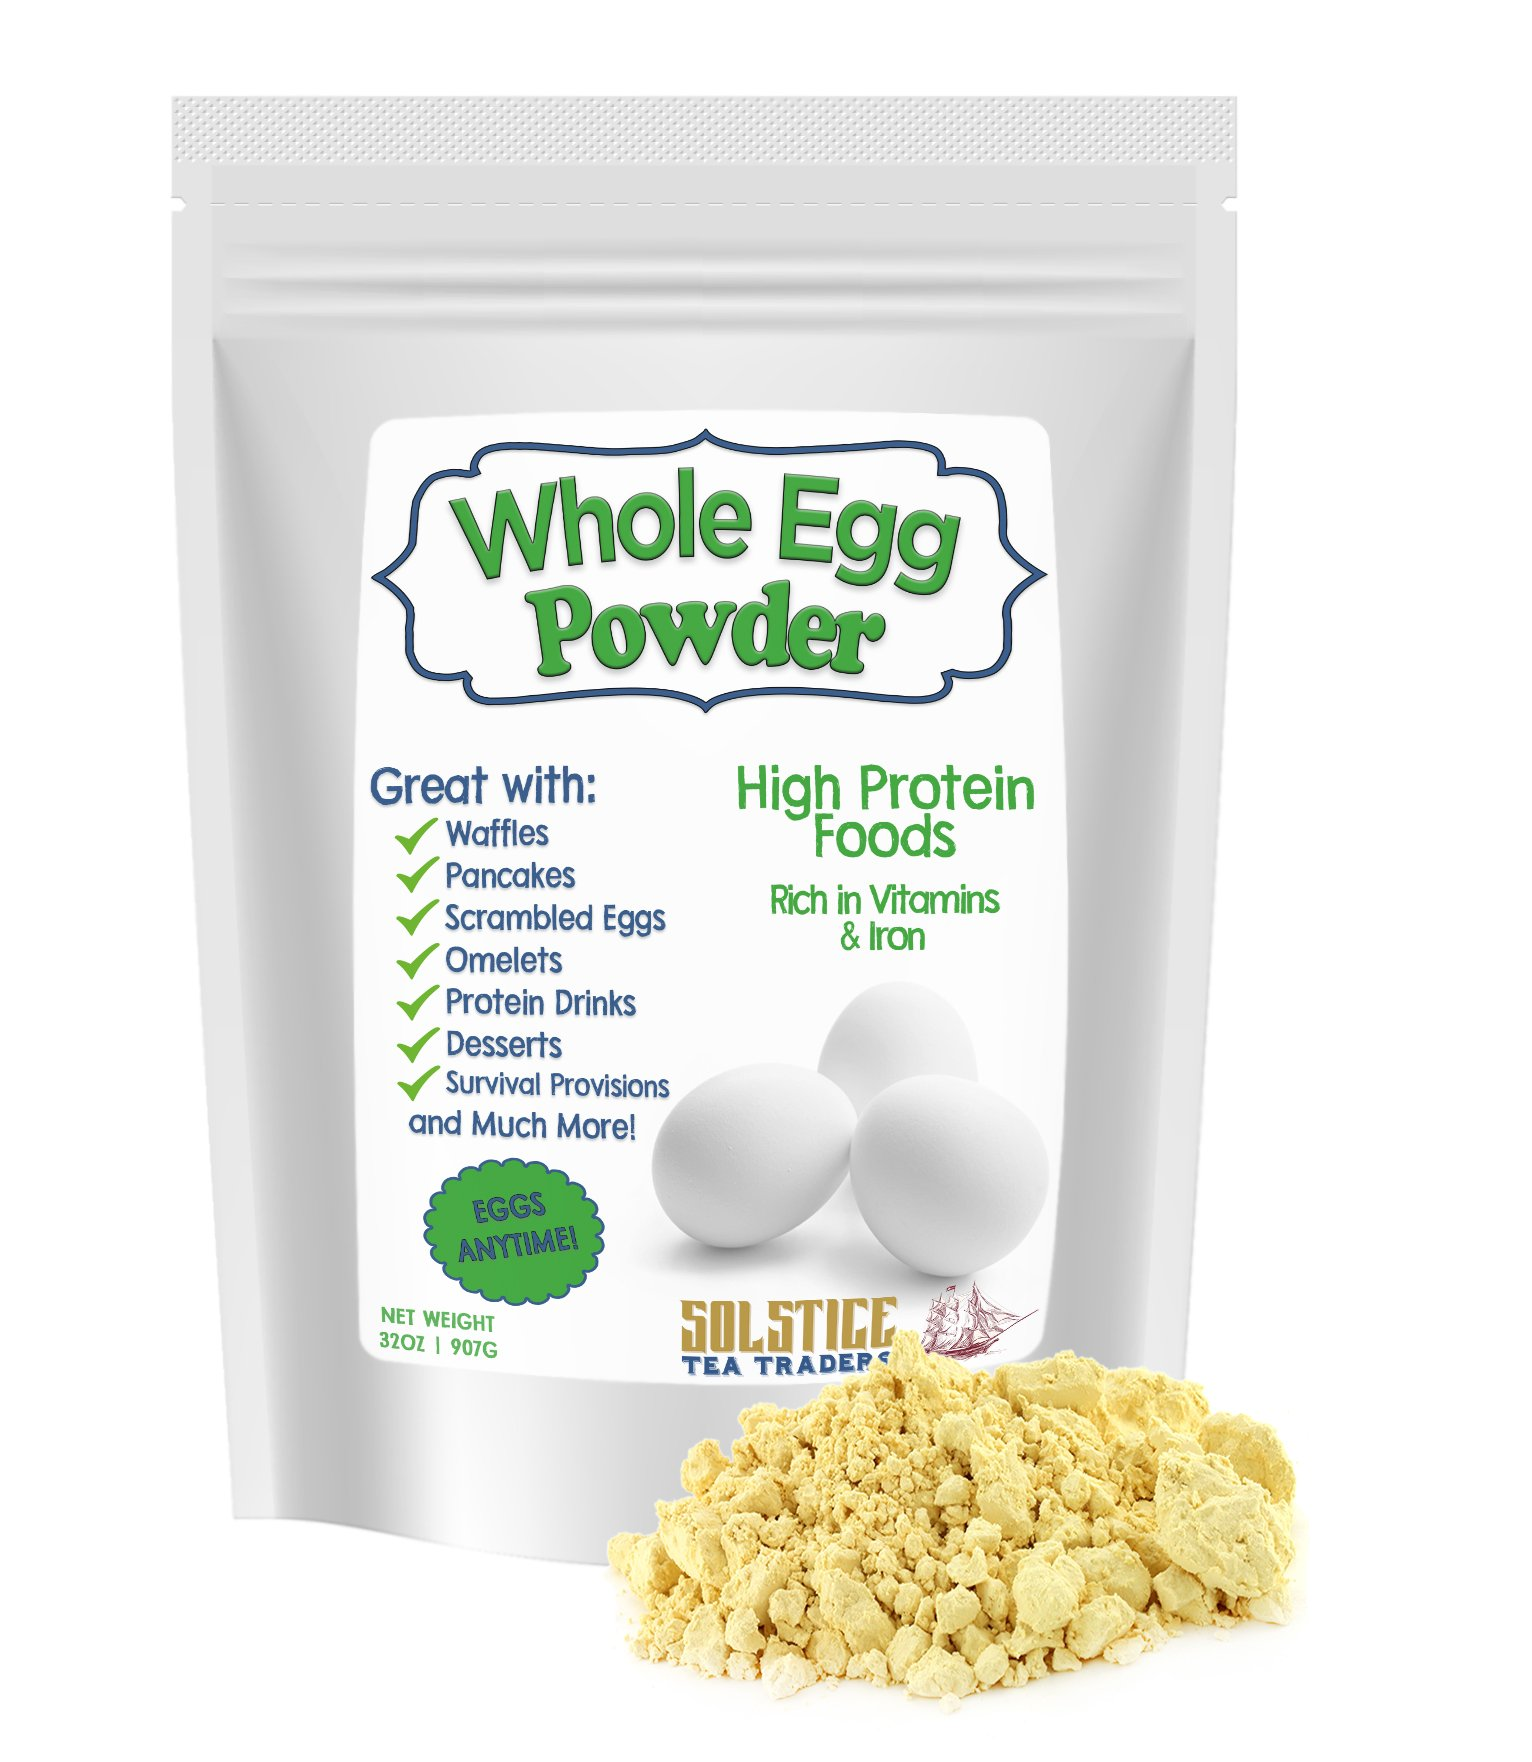 Powdered Whole Dried Eggs, Whole Dehydrated Egg Powder (2 pounds), For Scrambled Eggs, Baking Mixes, Camping & More by Solstice Tea Traders